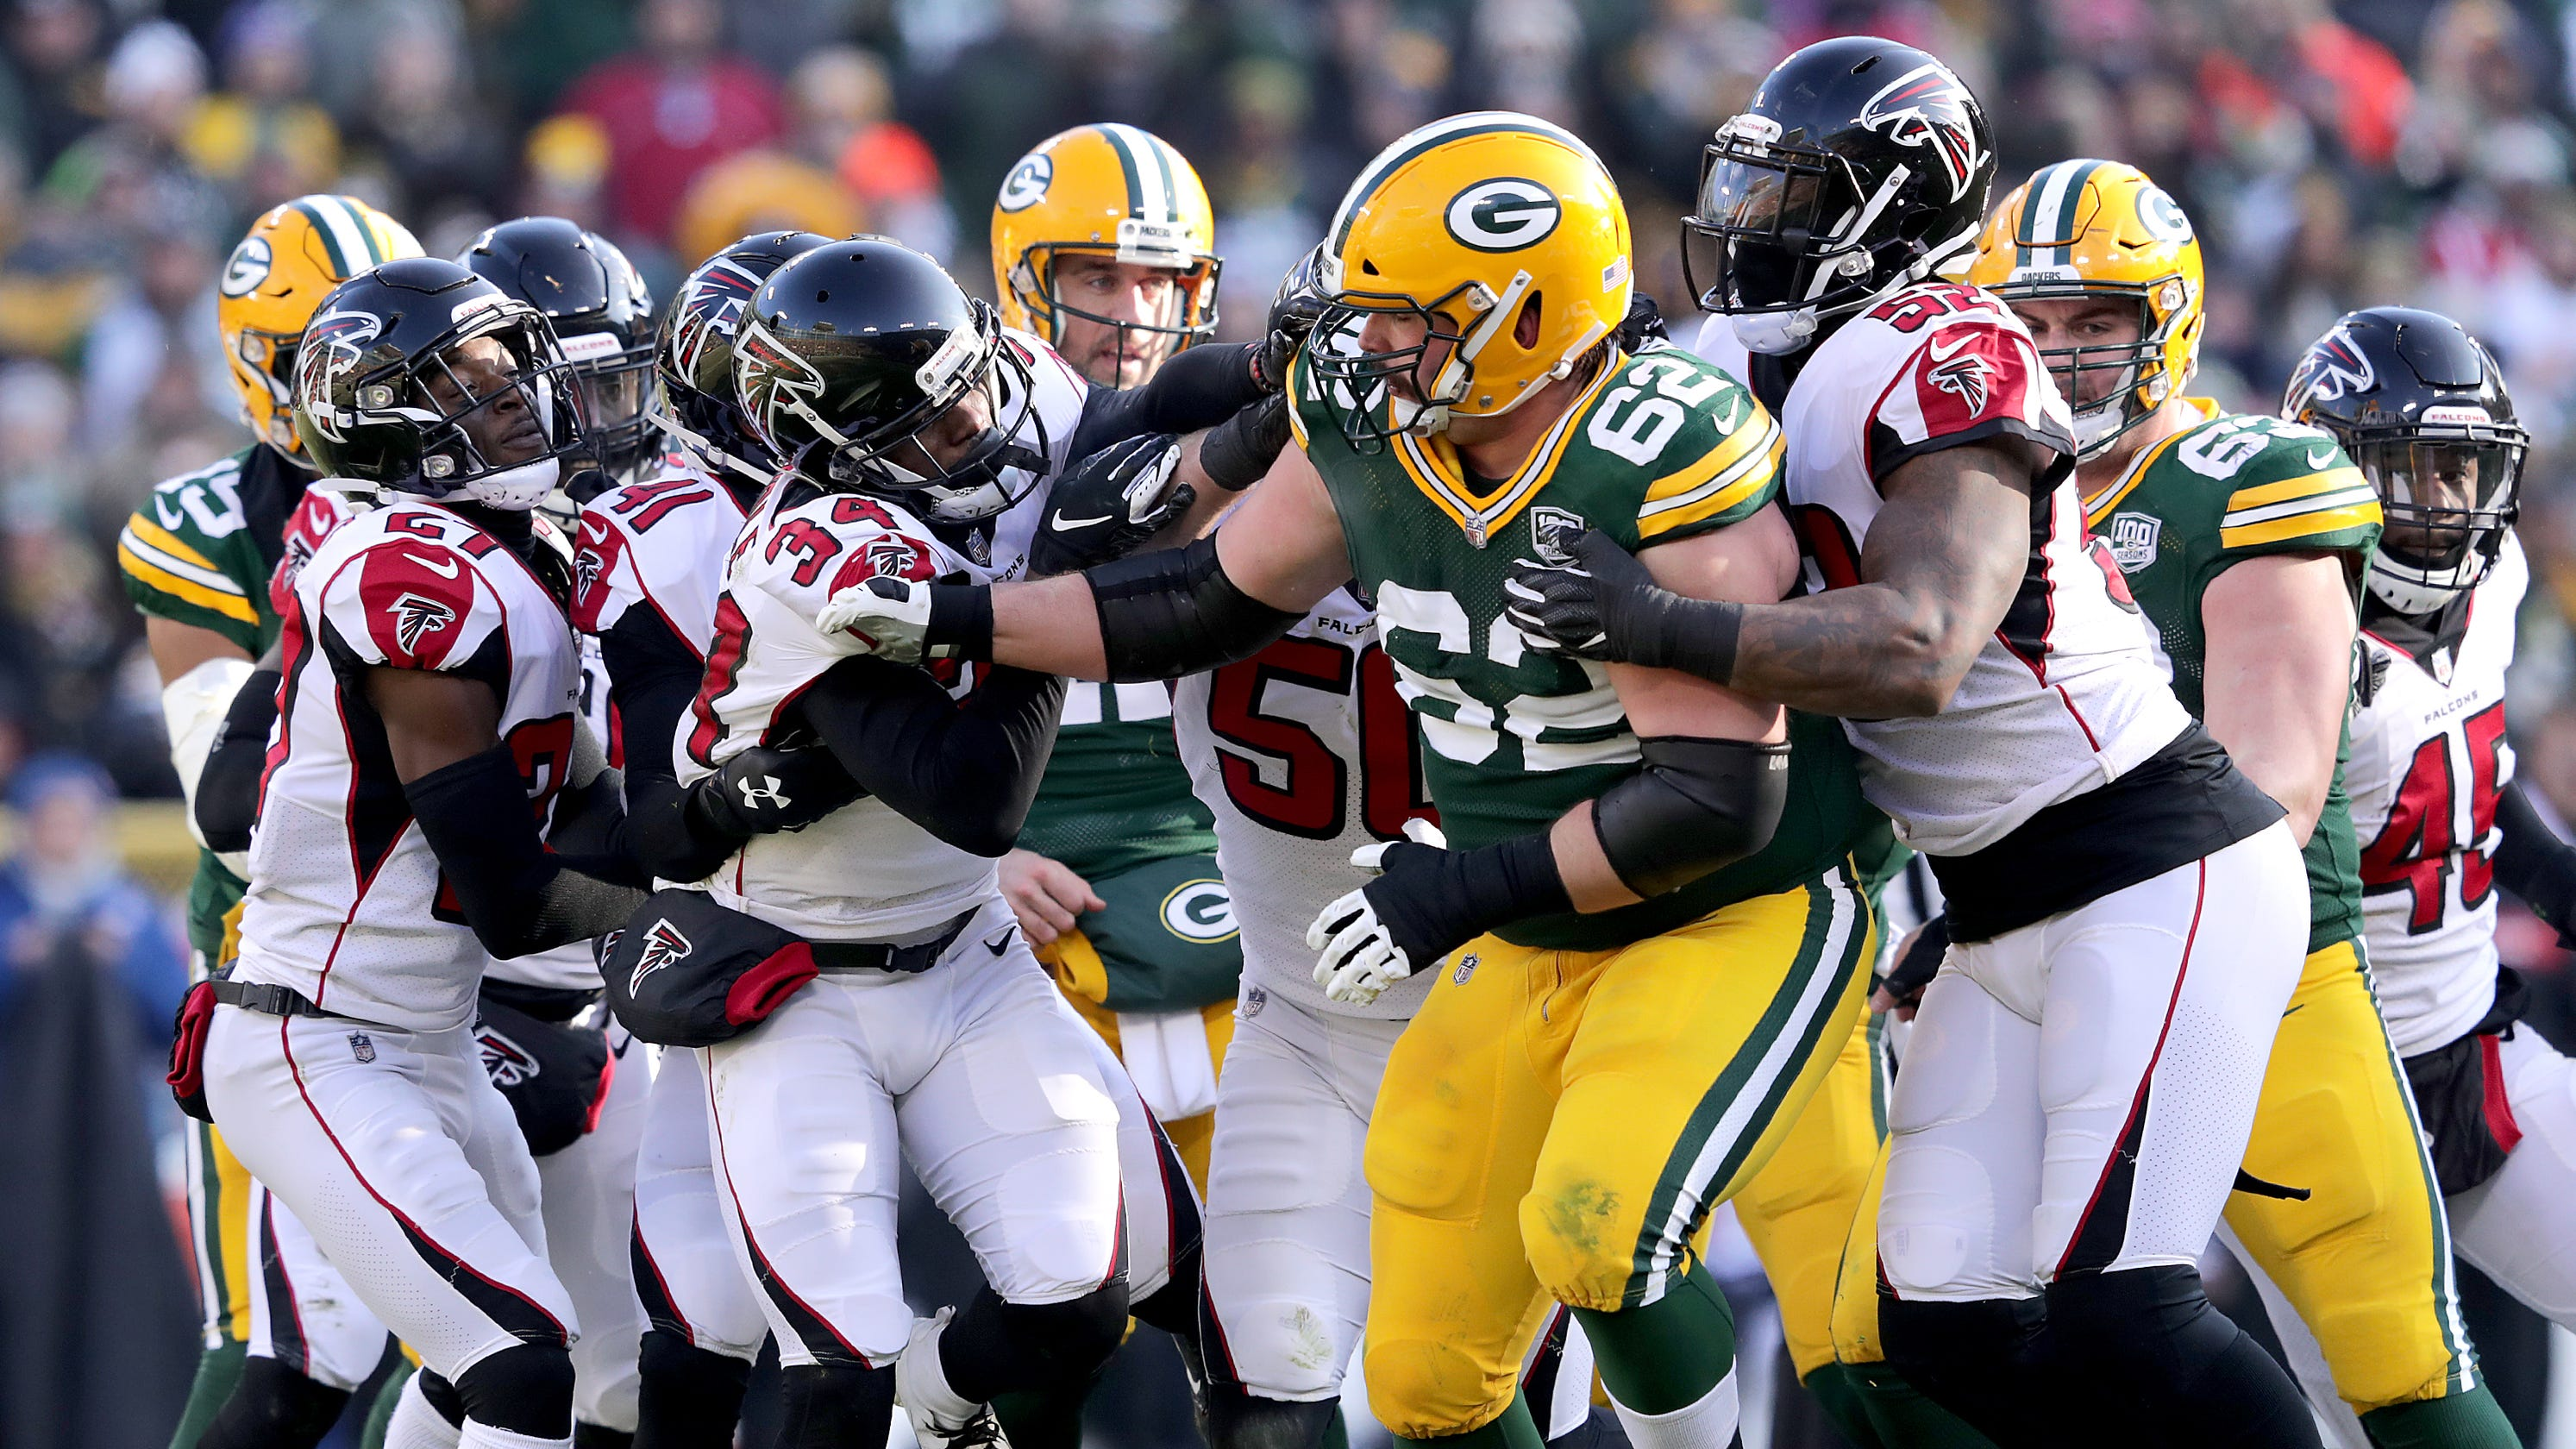 c806e29ad Packers Insider: Thumbs up to defense, down to challenge flags